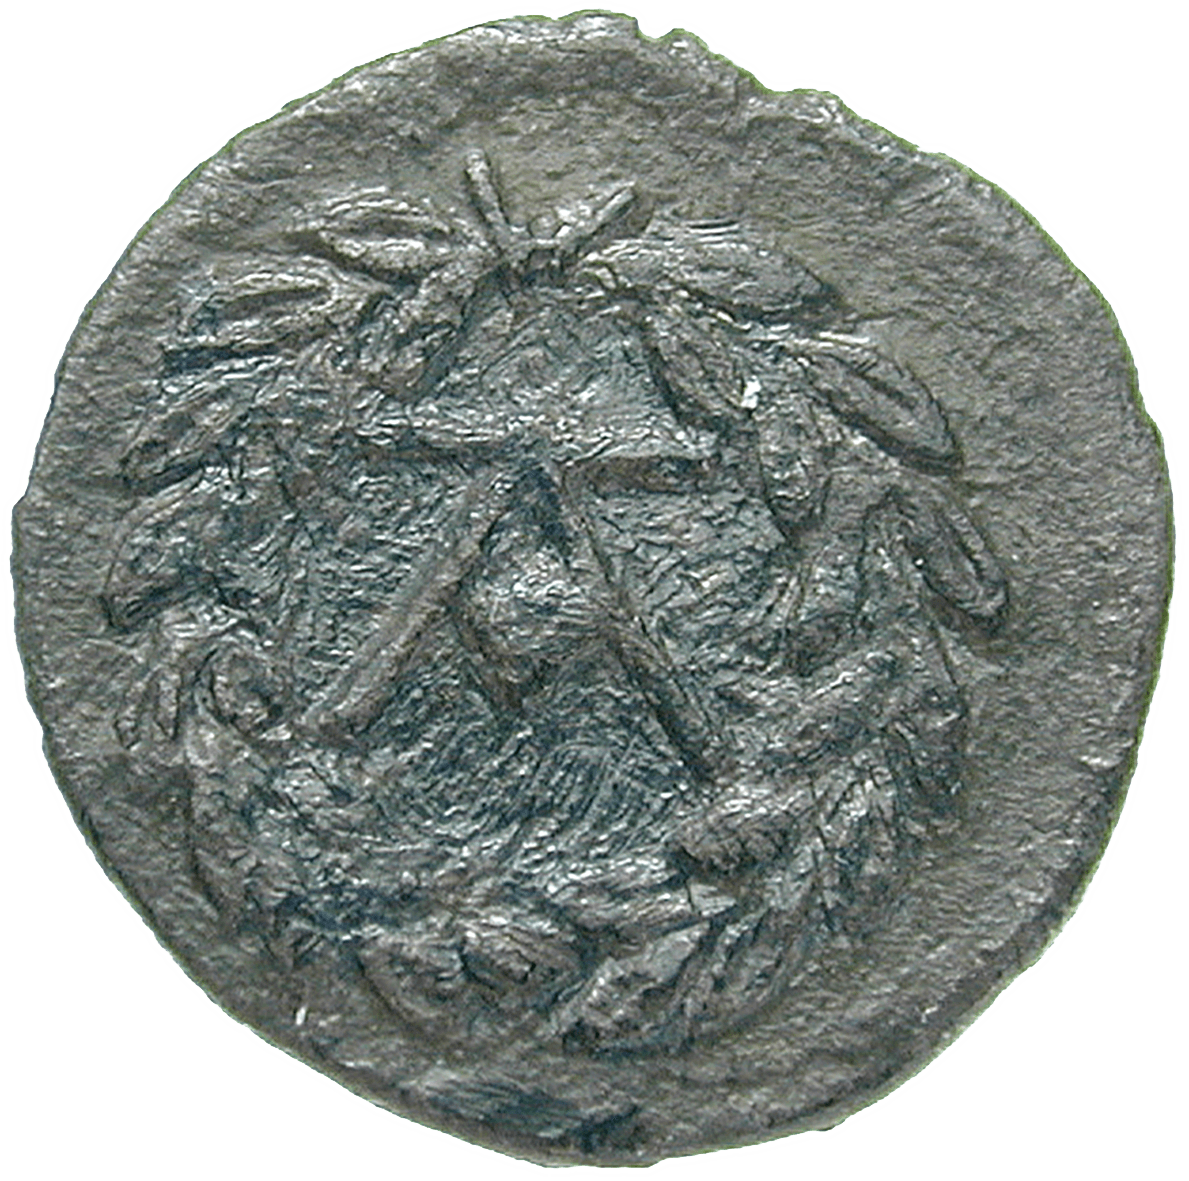 Sizilien, Sikeler, Tauromenion, Litra (reverse)